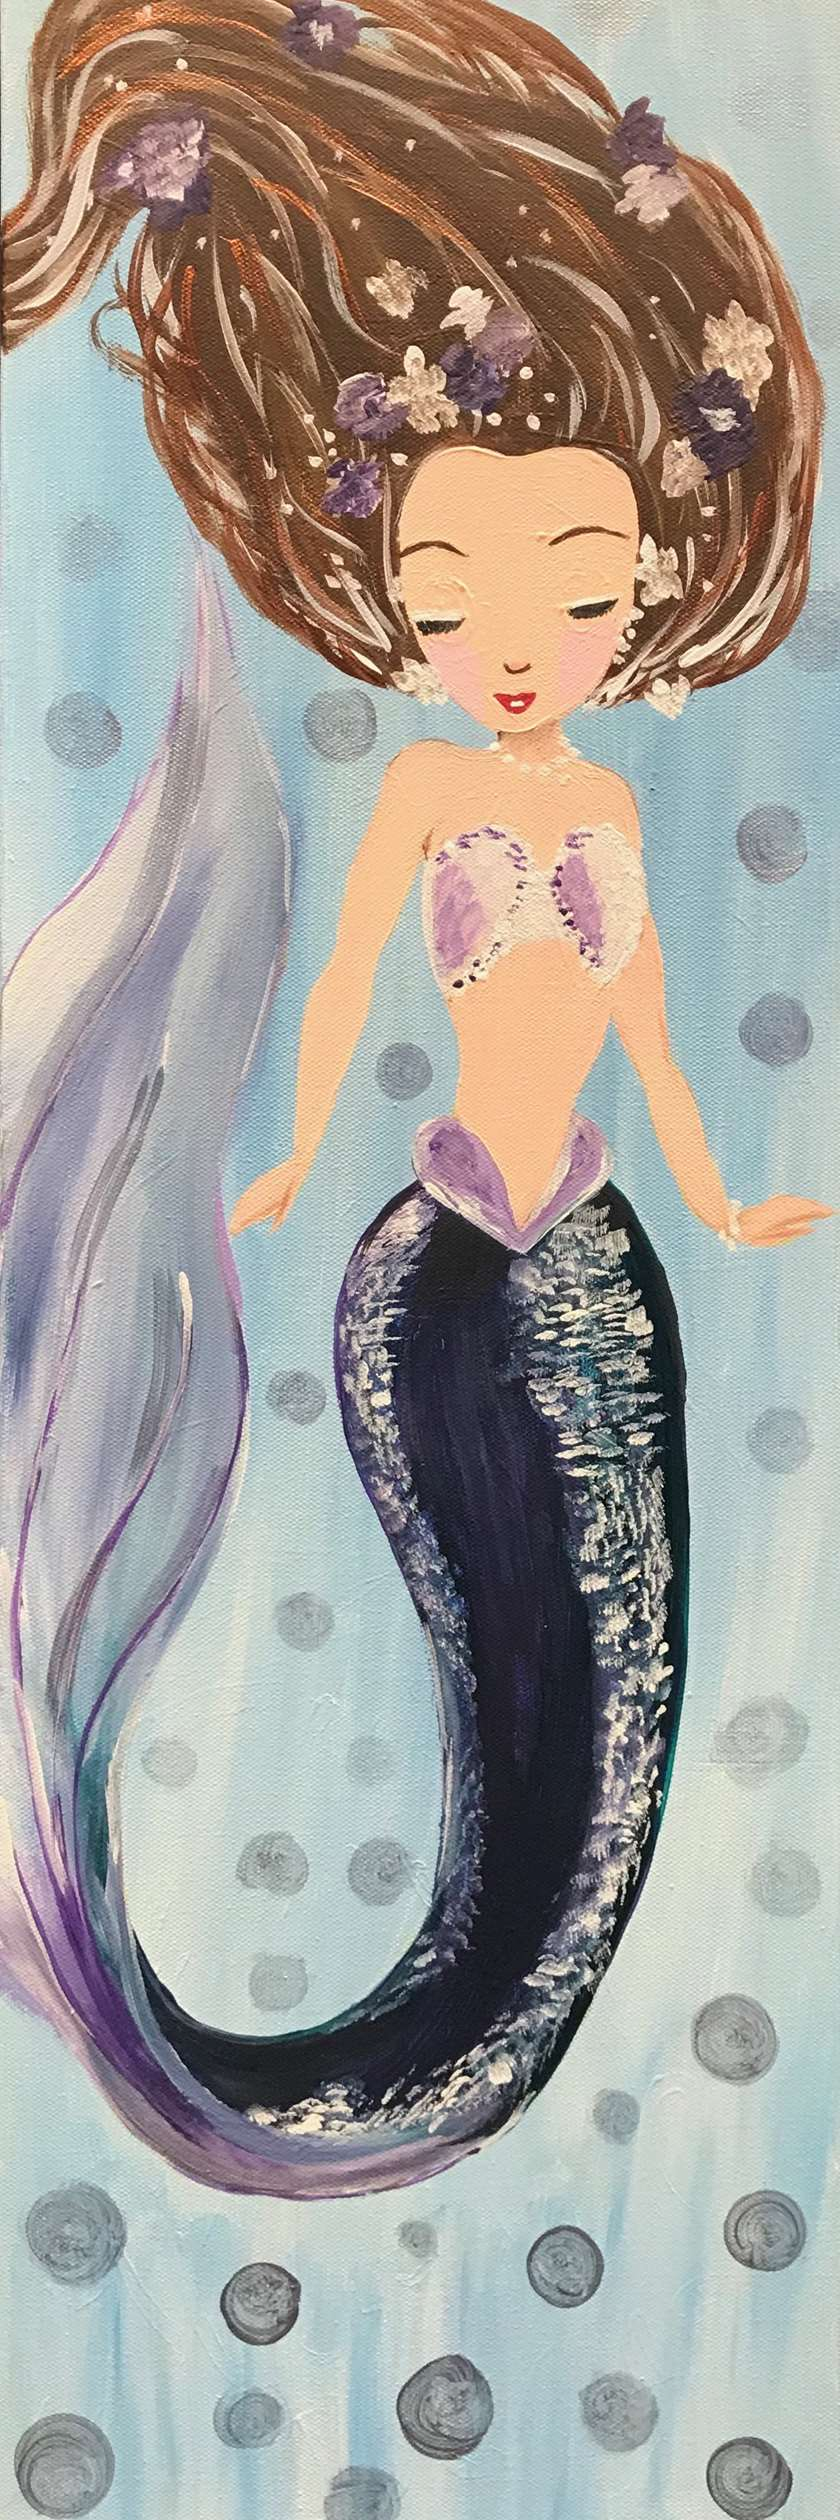 Mermaid Bubbles